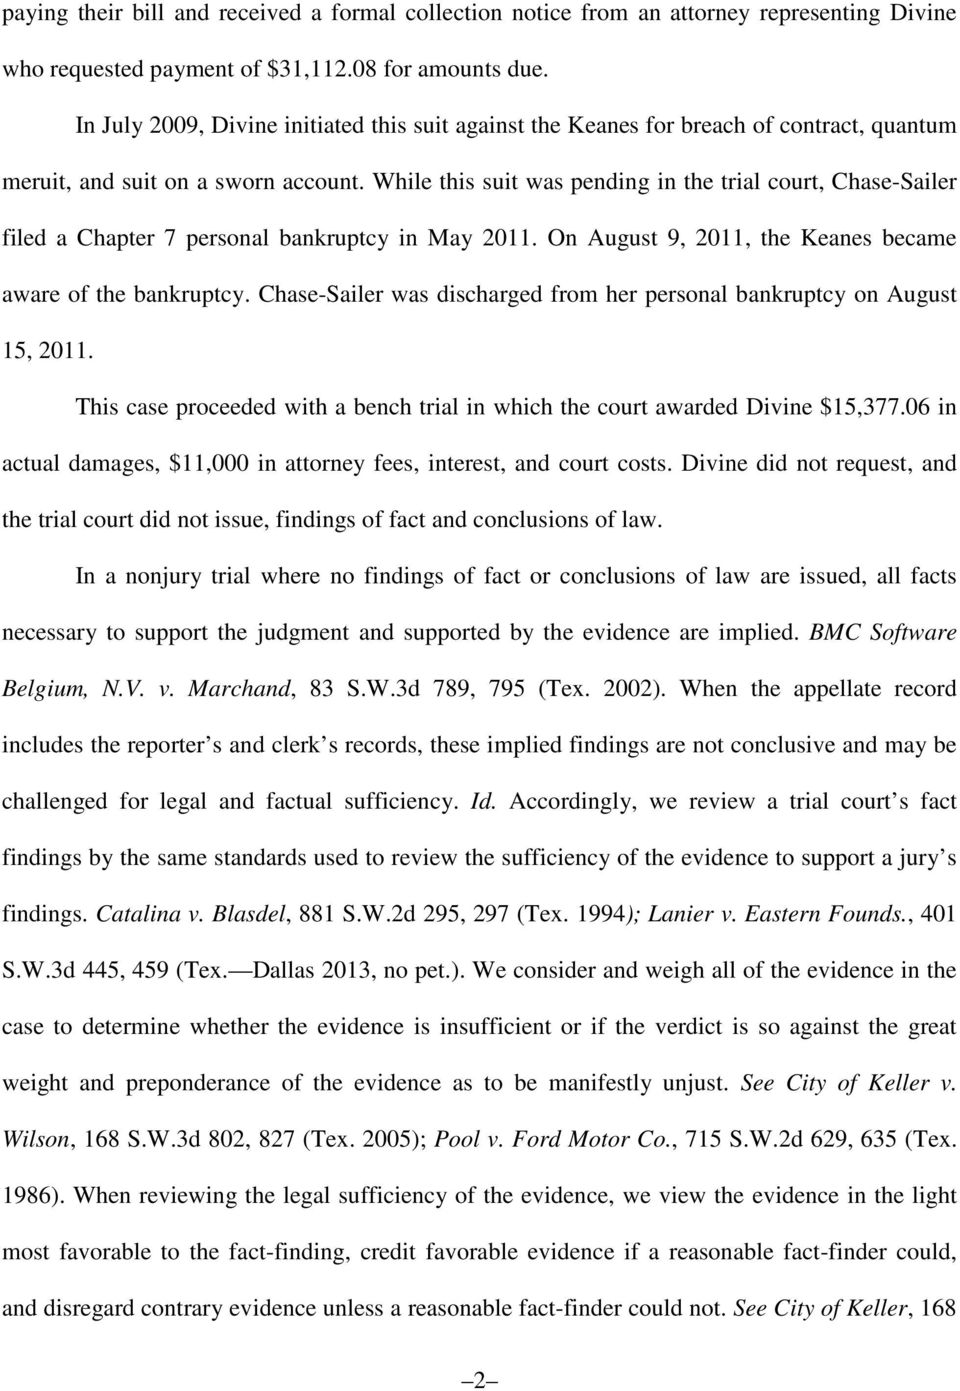 While this suit was pending in the trial court, Chase-Sailer filed a Chapter 7 personal bankruptcy in May 2011. On August 9, 2011, the Keanes became aware of the bankruptcy.